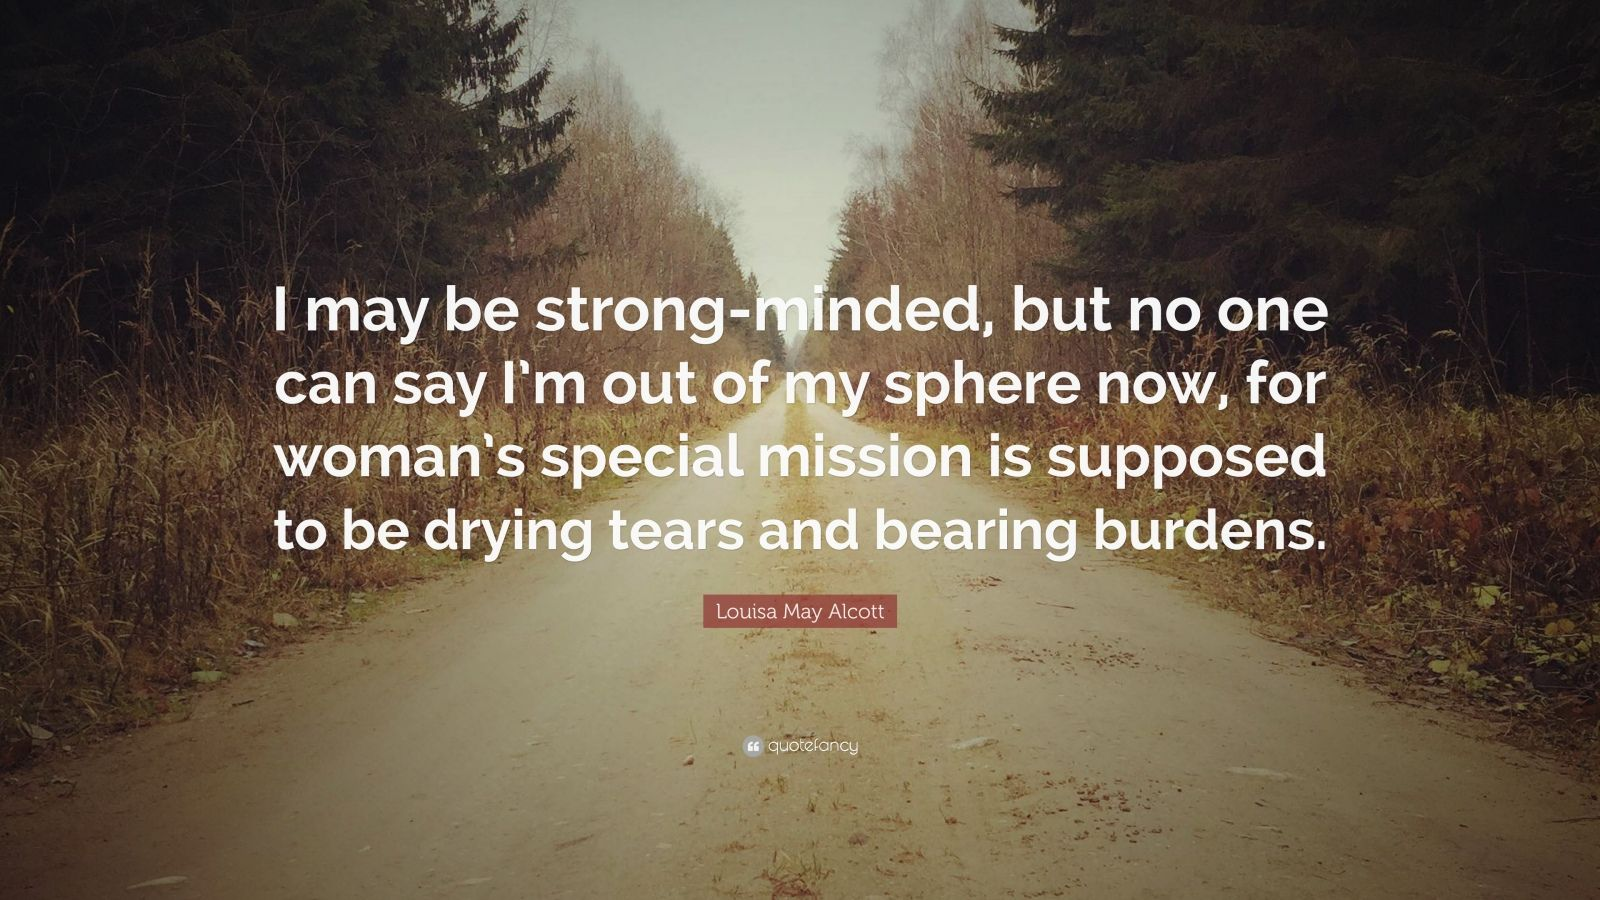 """Louisa May Alcott Quote: """"I may be strong-minded, but no one can say I'm out of my sphere now, for woman's special mission is supposed to be drying tears and bearing burdens."""""""